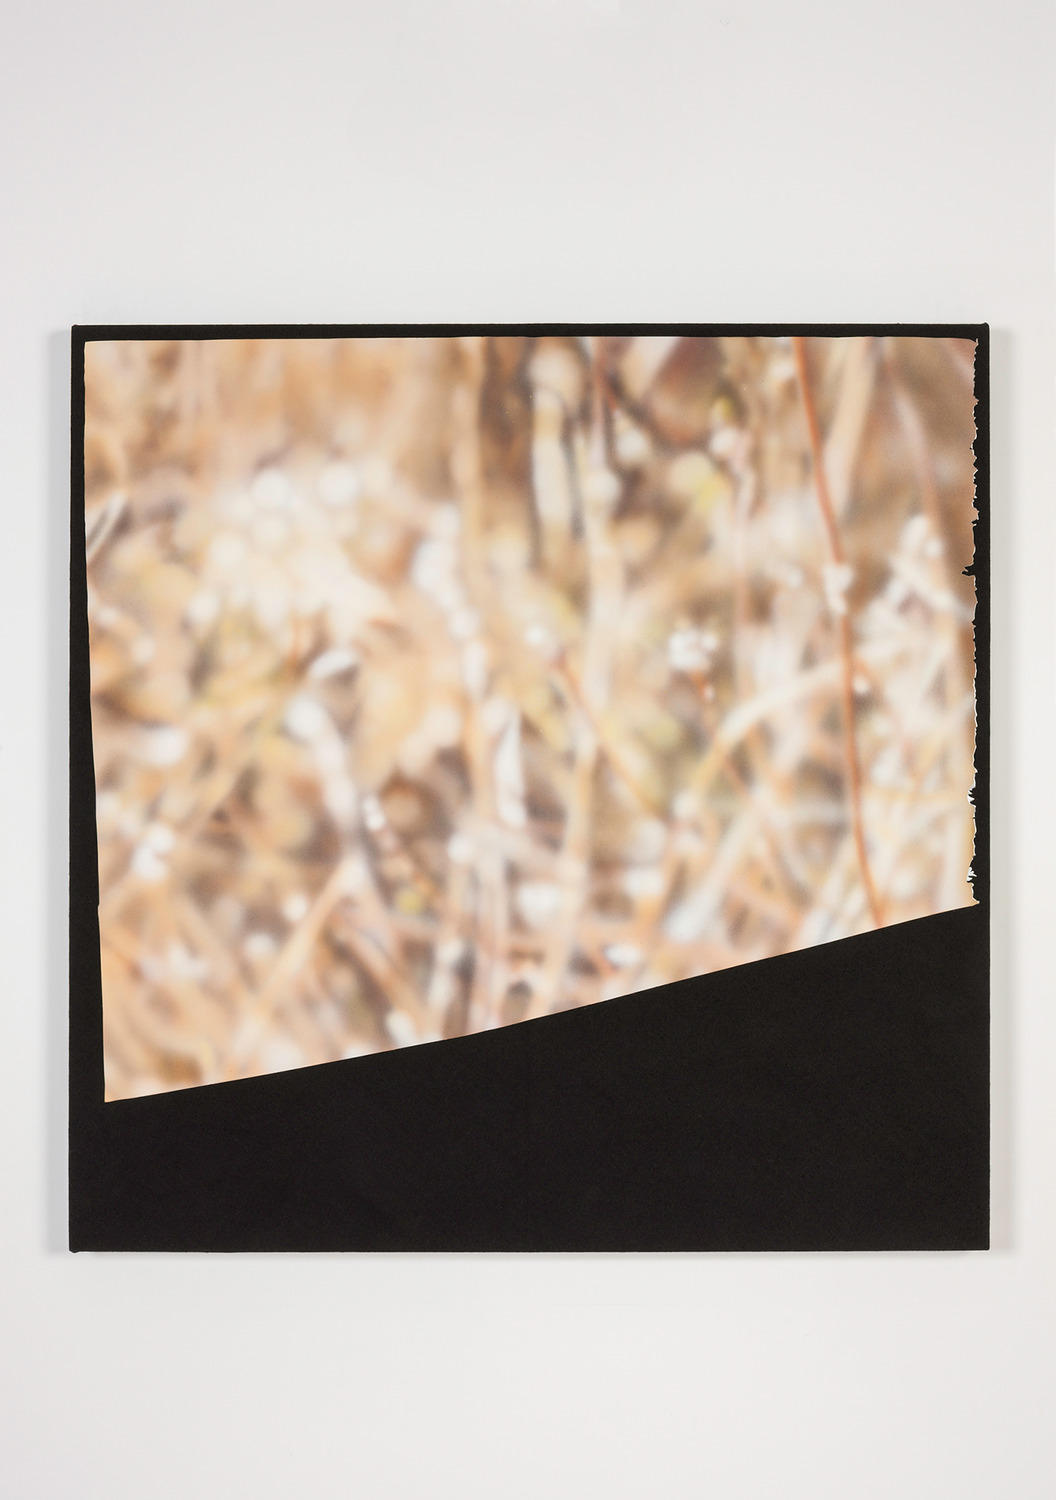 Magazine Painting (Dried Grass), 2014, Oil on aluminum on dyed linen, 96.5 x 96.5 x 4.5 cm